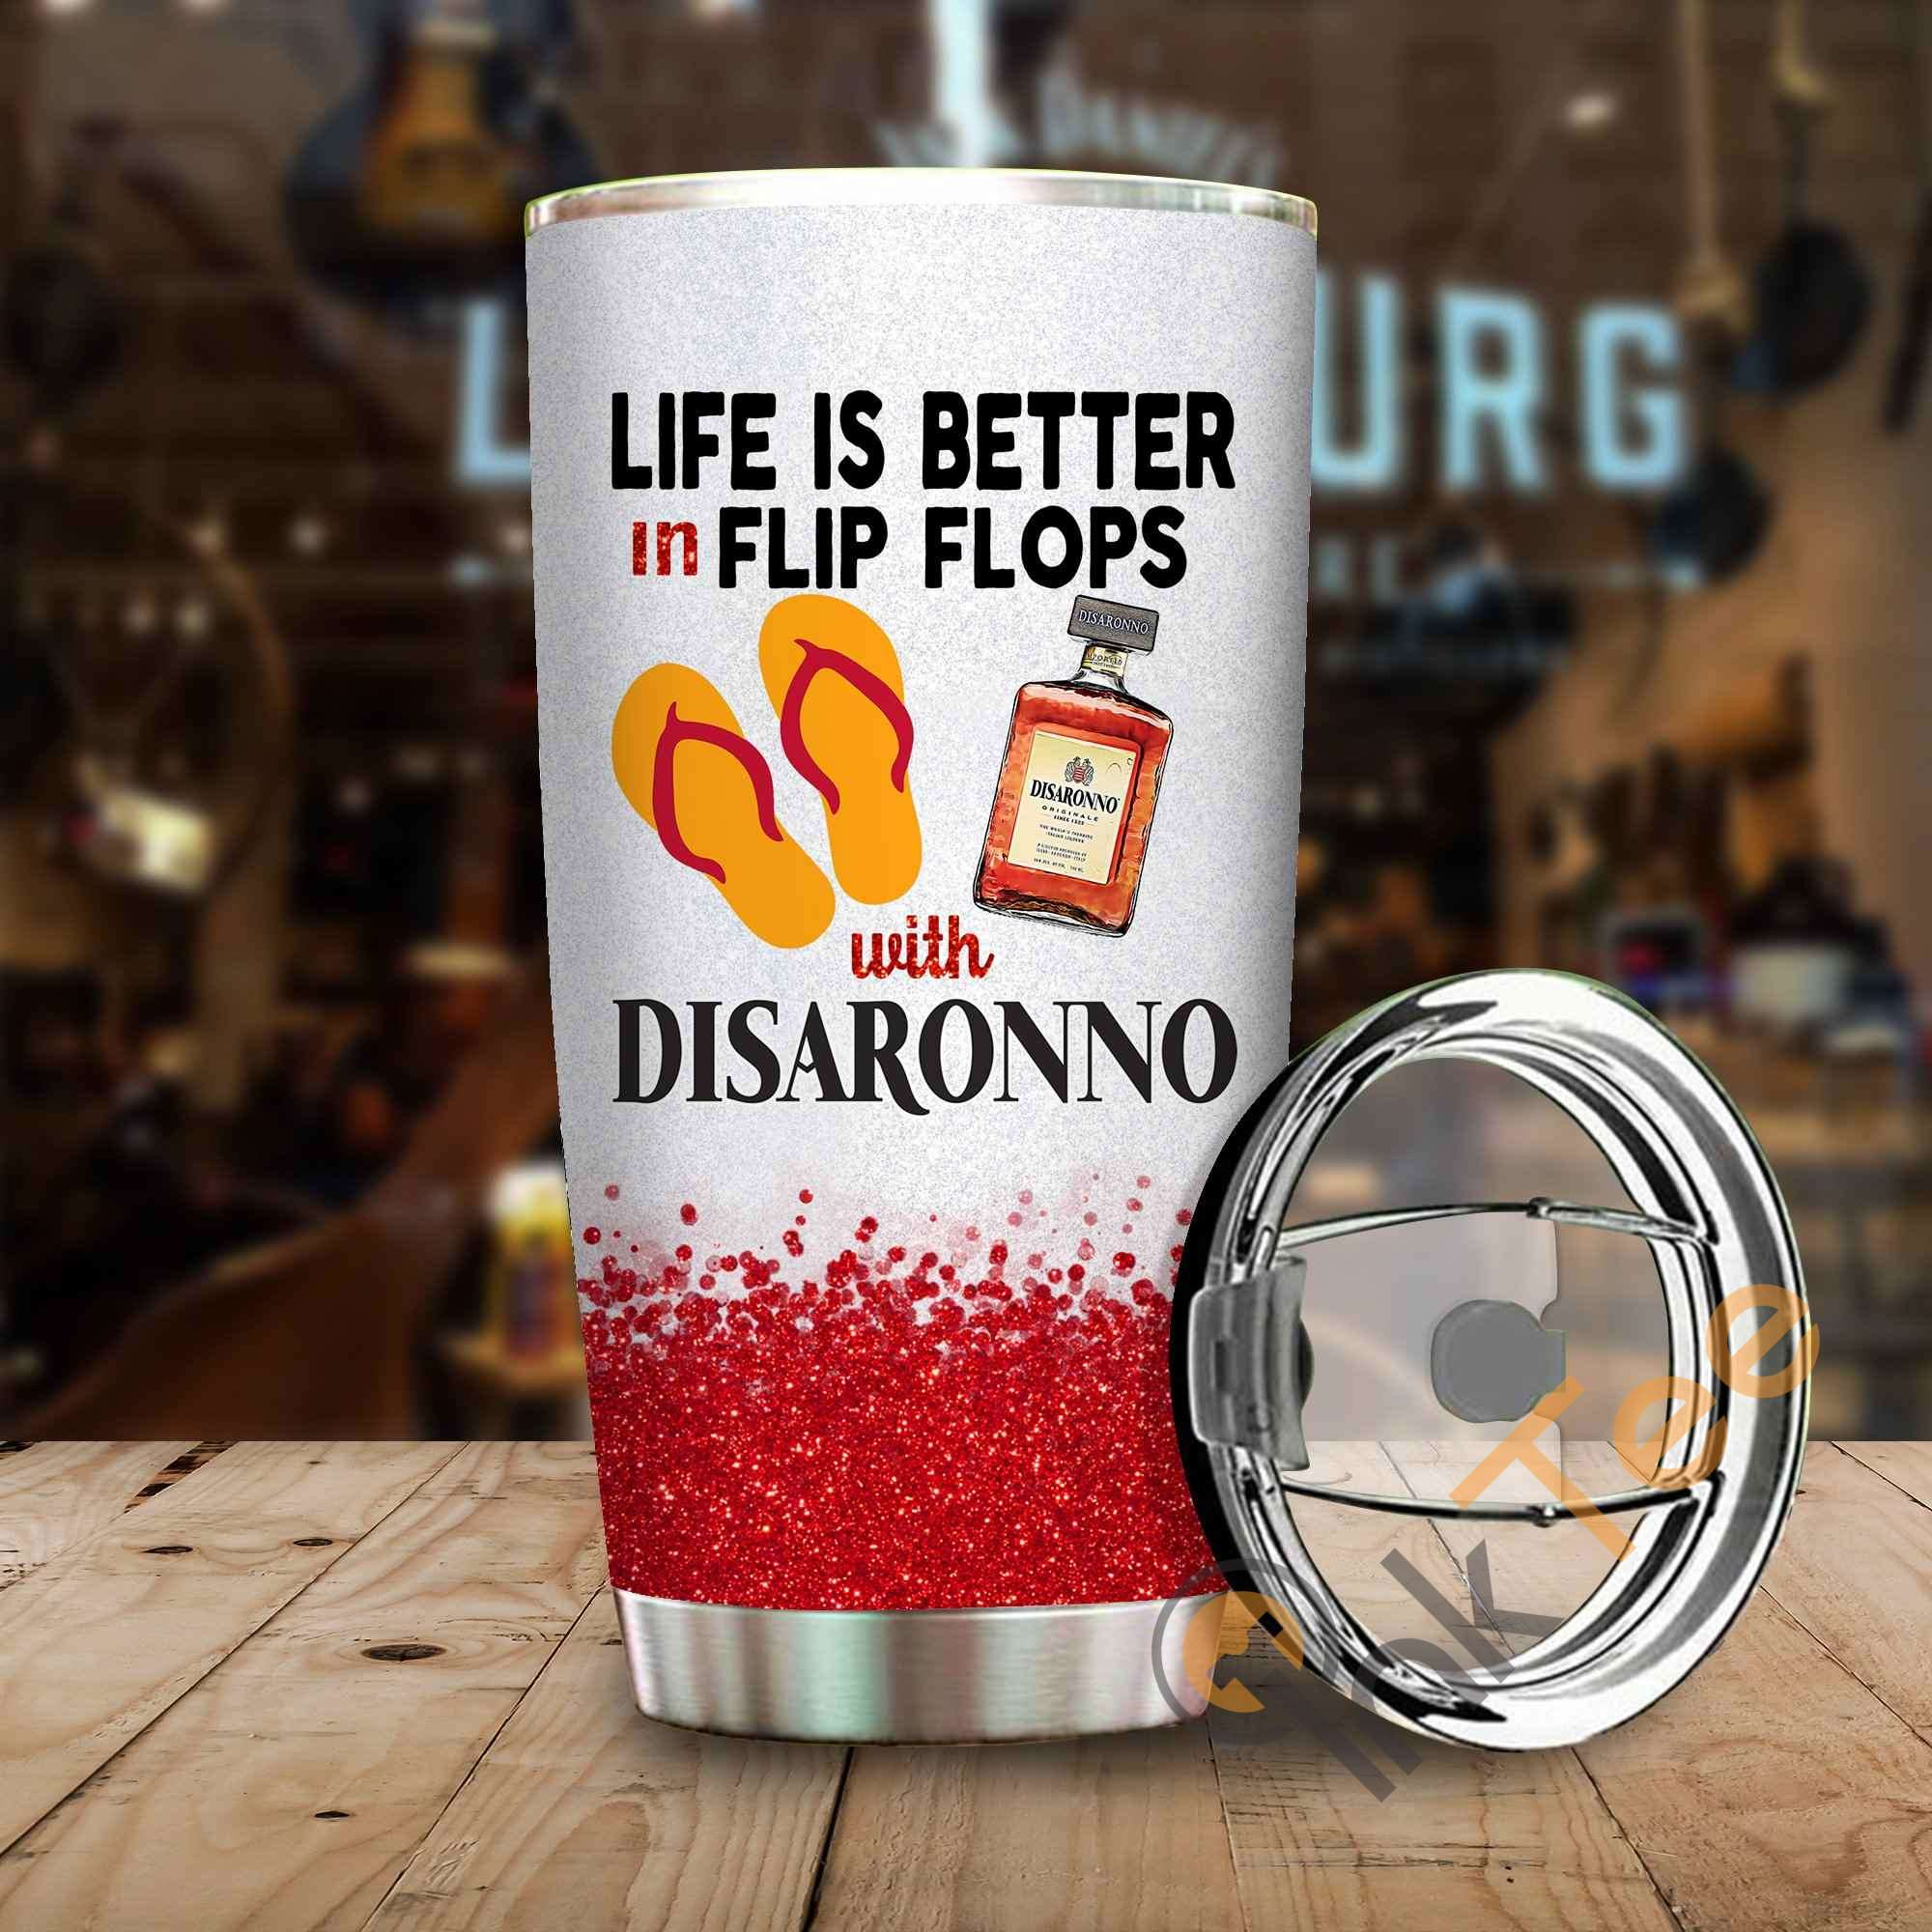 Life Is Better In Flip Flops With Disaronno Amazon Best Seller Sku 3952 Stainless Steel Tumbler